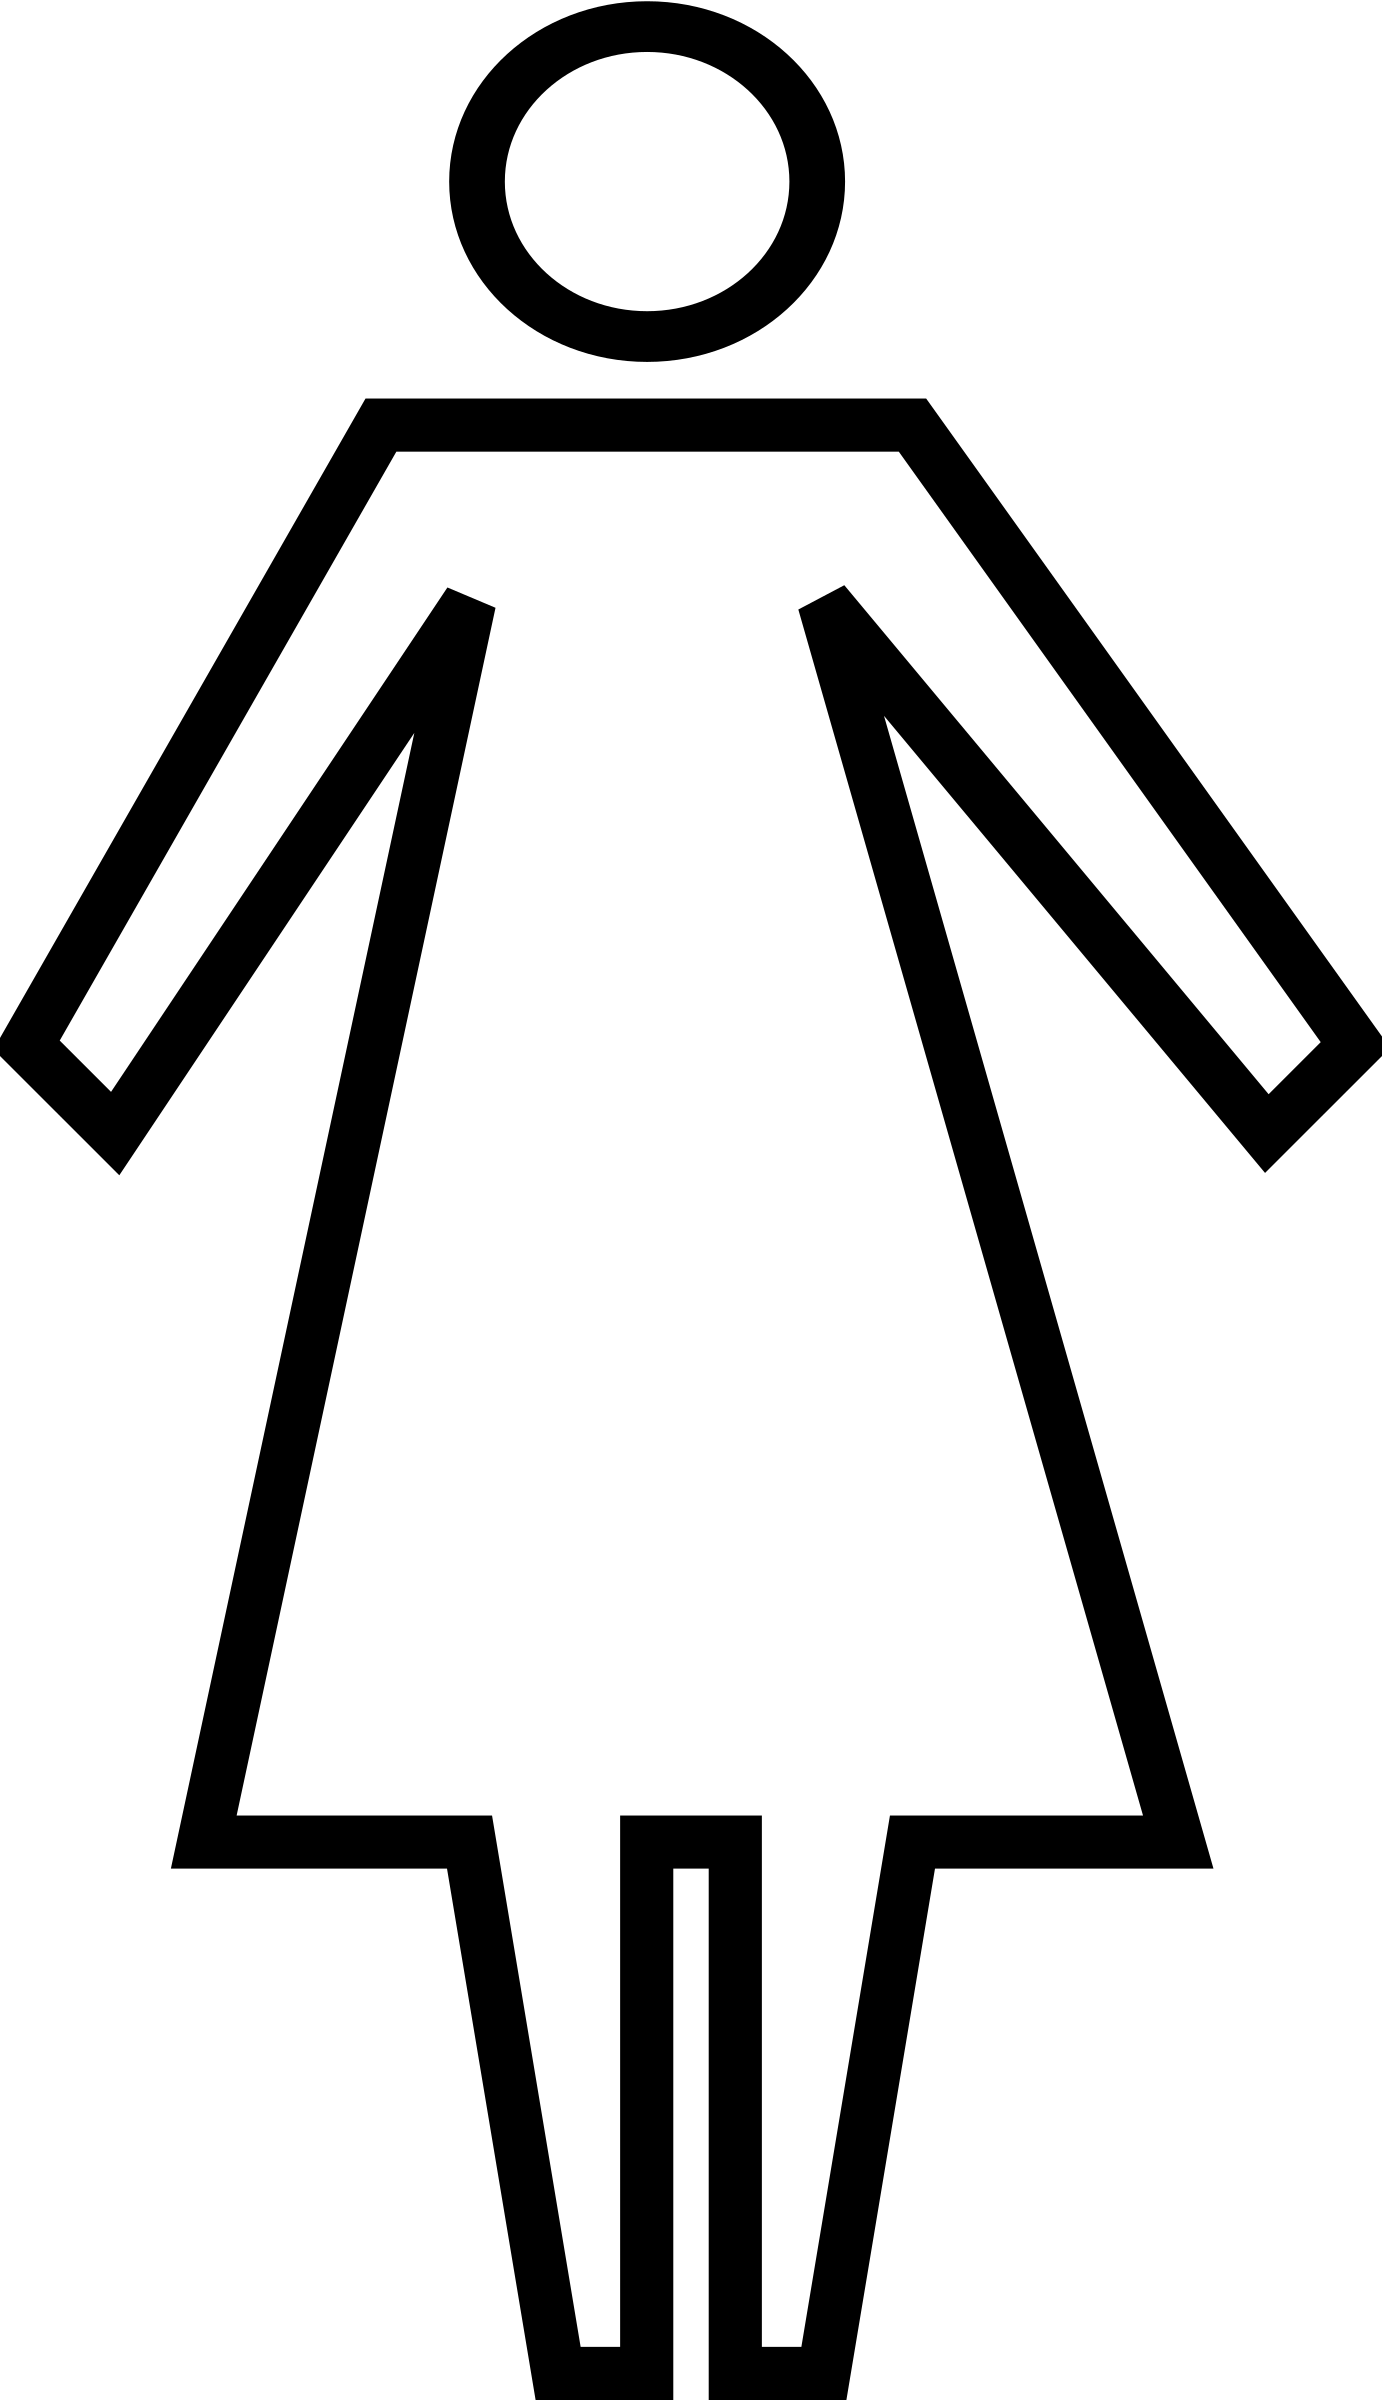 toilet women bathroom large filetoilet spirit man svg commons file womensvg gallery sign woman wikimedia open decoration female